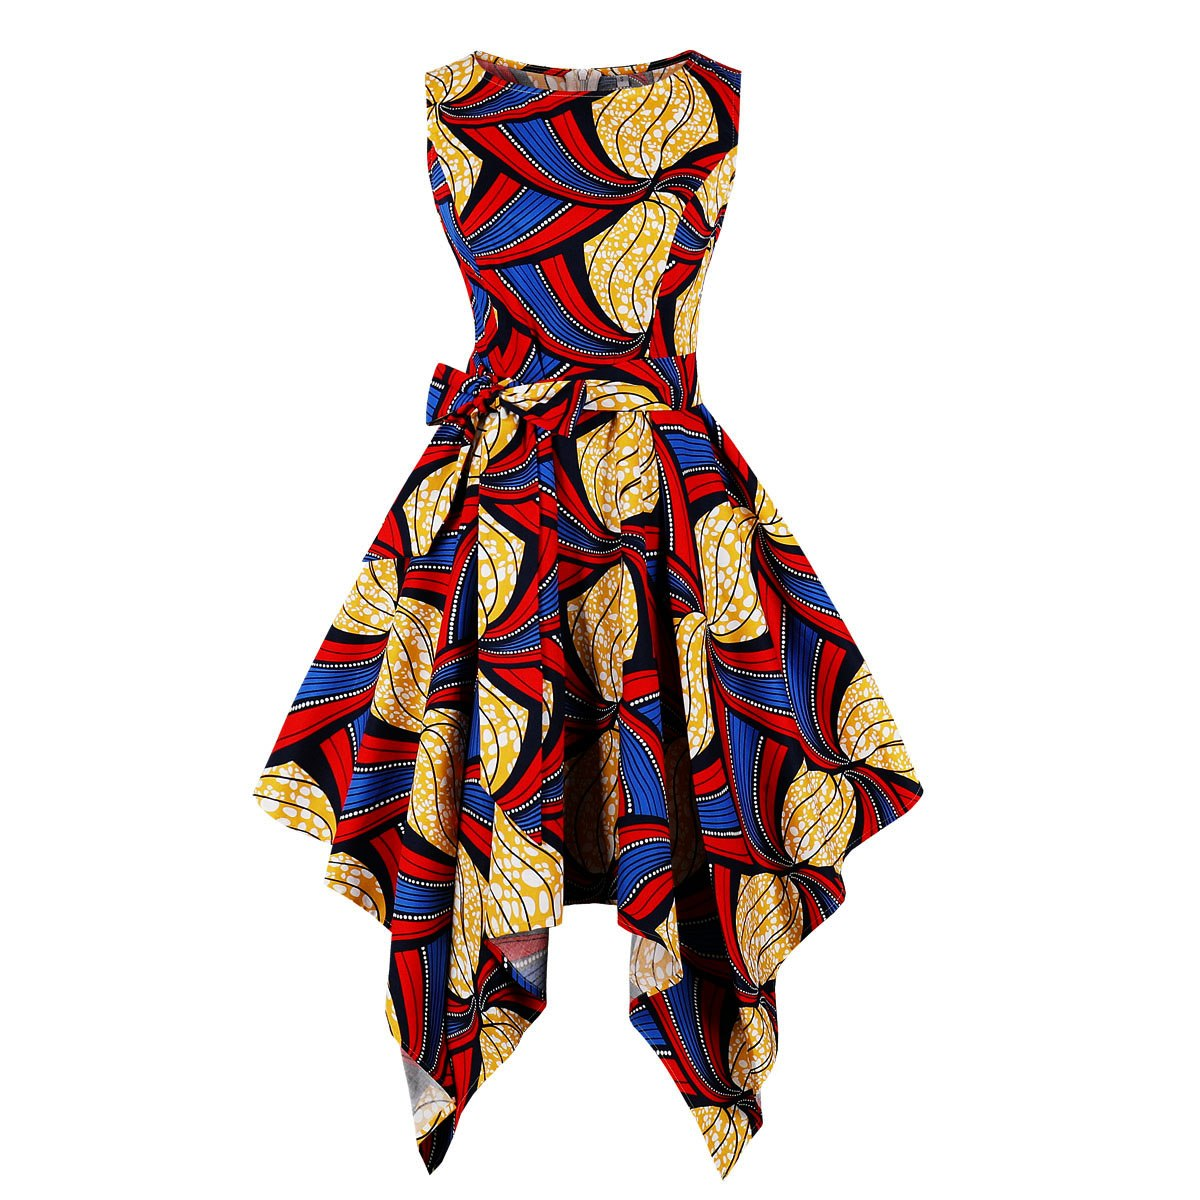 S-4XL Plus Size African Dresses For Women Africa Clothing Asymmetrical Dress Middle East Dashiki Dresses Bazin Riche Traditional - African Clothing Online